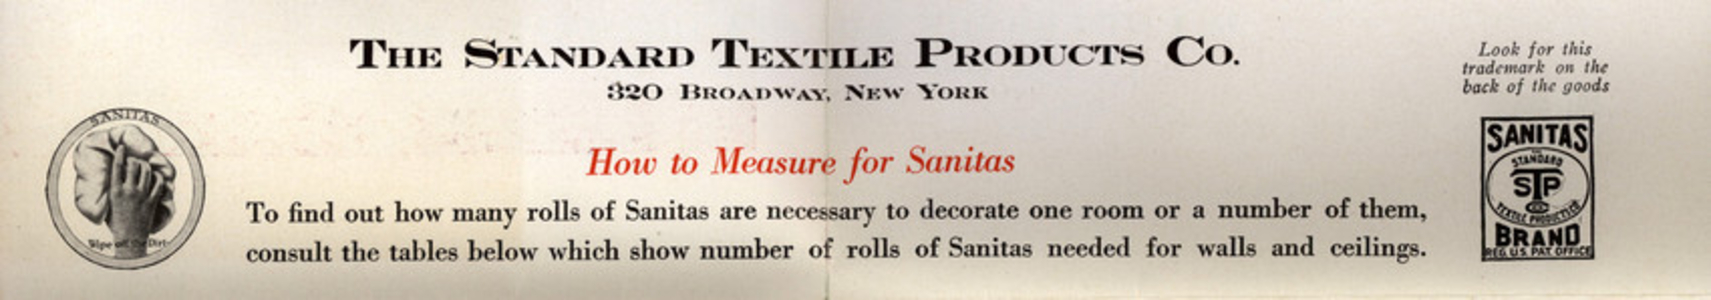 How to measure for Sanitas, Standard Textile Products Co., 320 Broadway, New York, New York